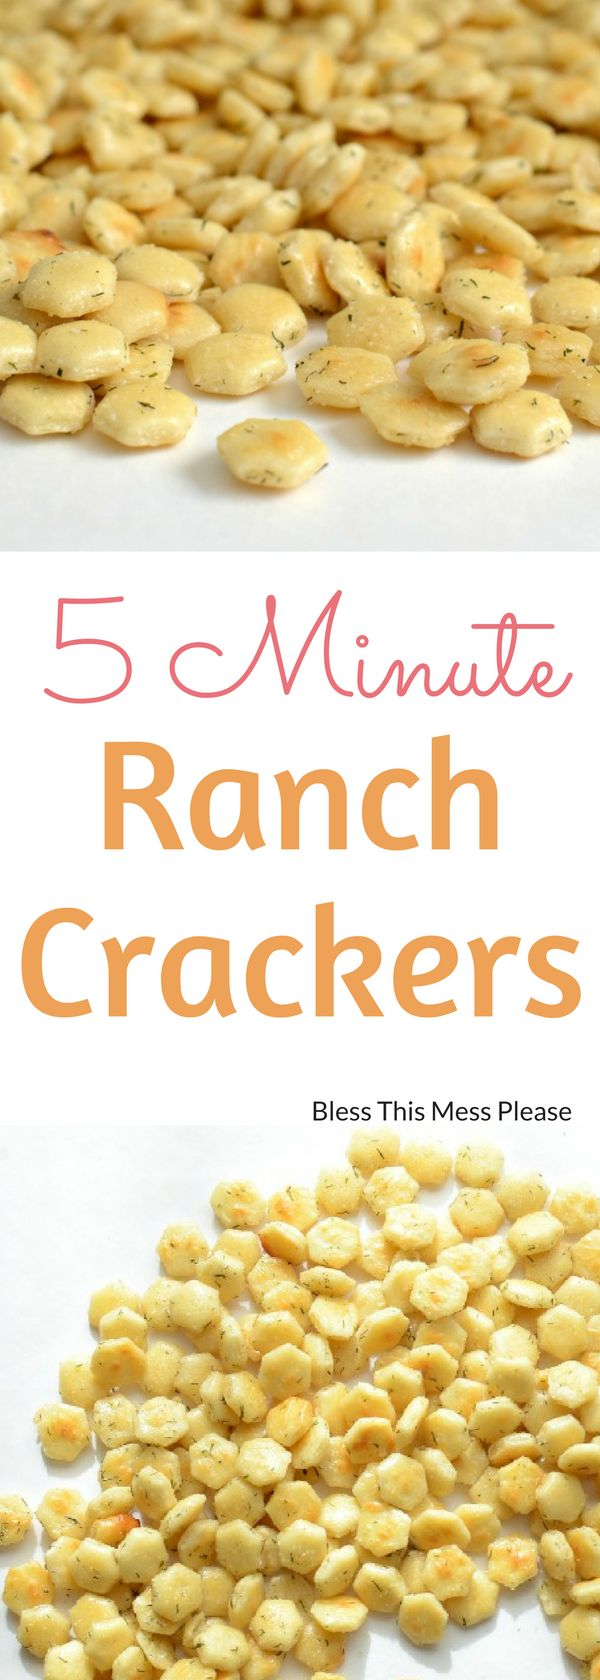 5 Minute Ranch Crackers - These Five Minute Ranch Crackers are so very easy and so very addicting. I promise you won't be able to stop at just one handful.